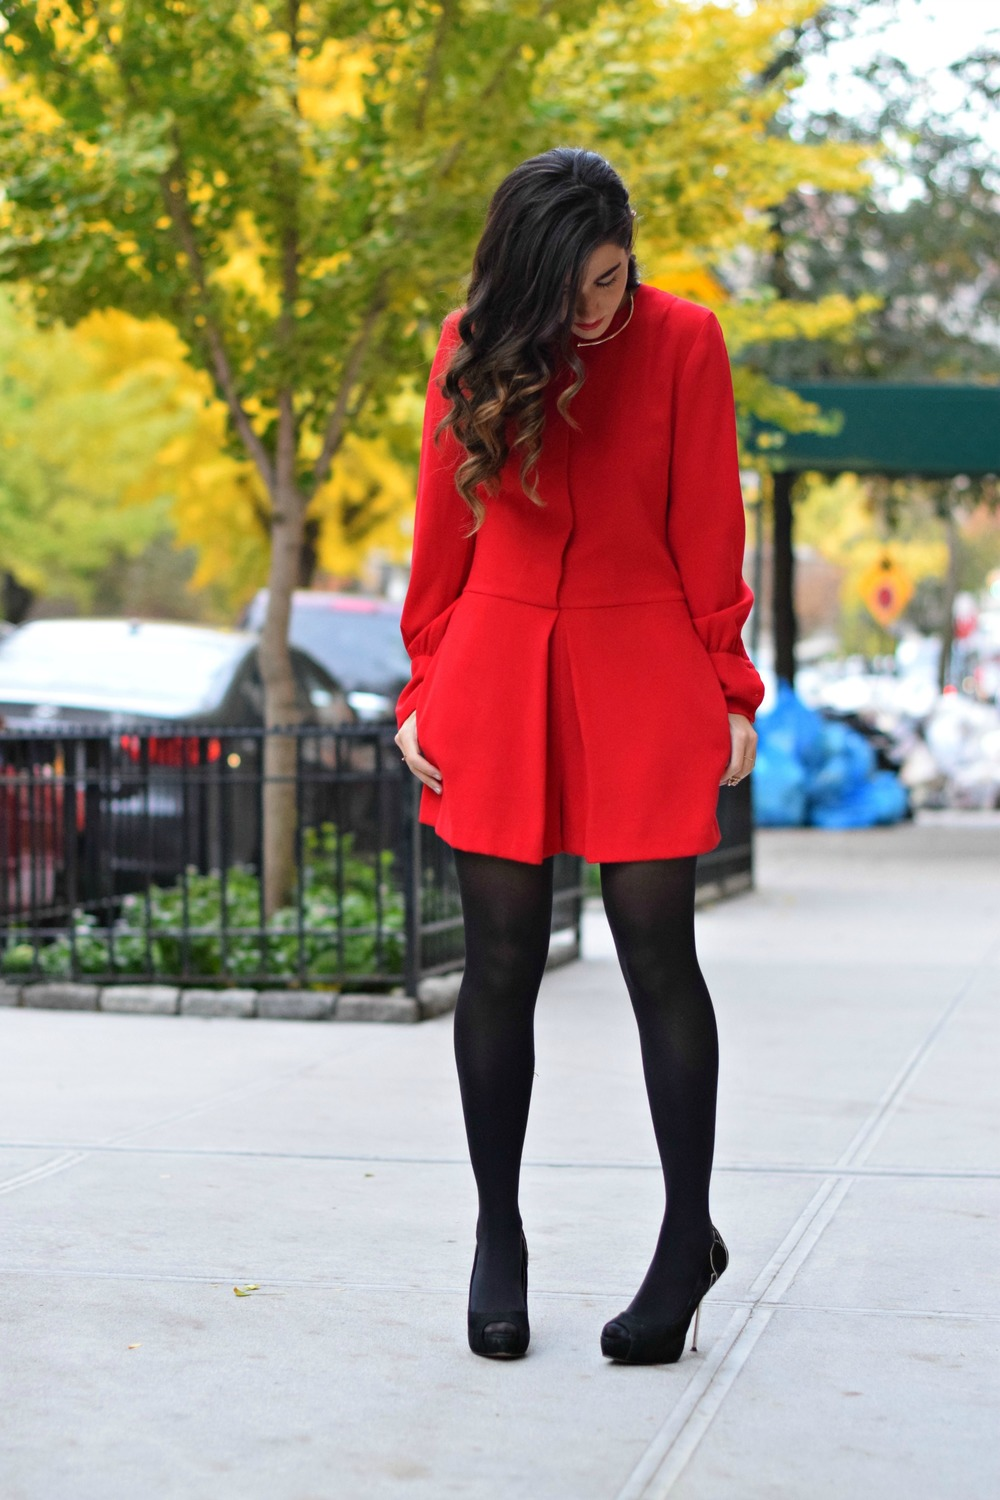 Red Romper Black Tights Louboutins & Love Fashion Blog Esther Santer NYC Street Style Blogger Winter Fall Look Shoes Heels Zara Gold Collar Necklace Braid Hair Inspo Outfit OOTD Photoshoot NYC Girl Women Stiletto Wear Shop Model Clothing Accessories.jpg